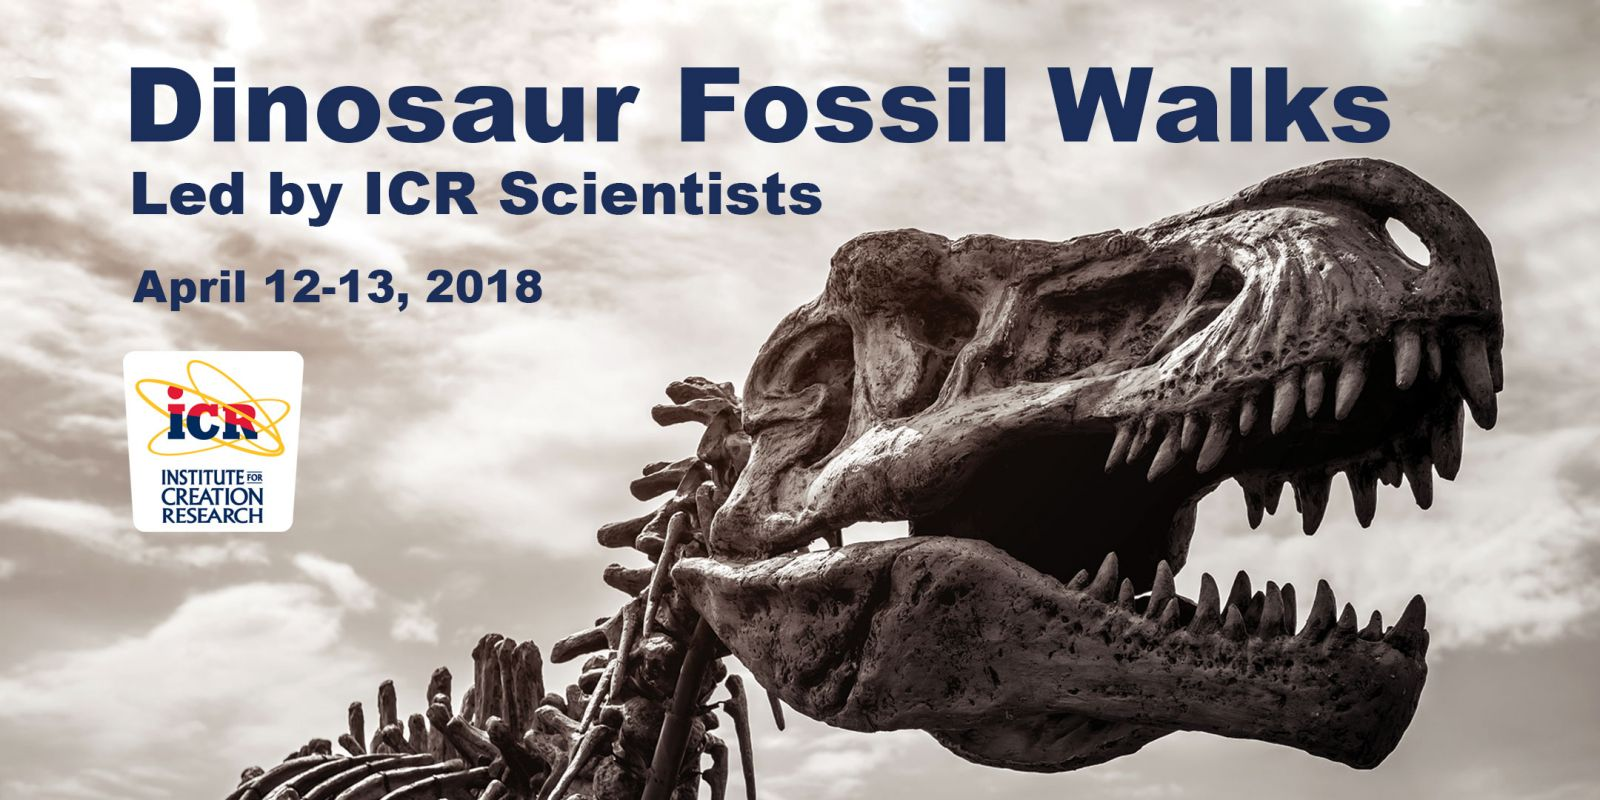 Dinosaur Fossil Walks